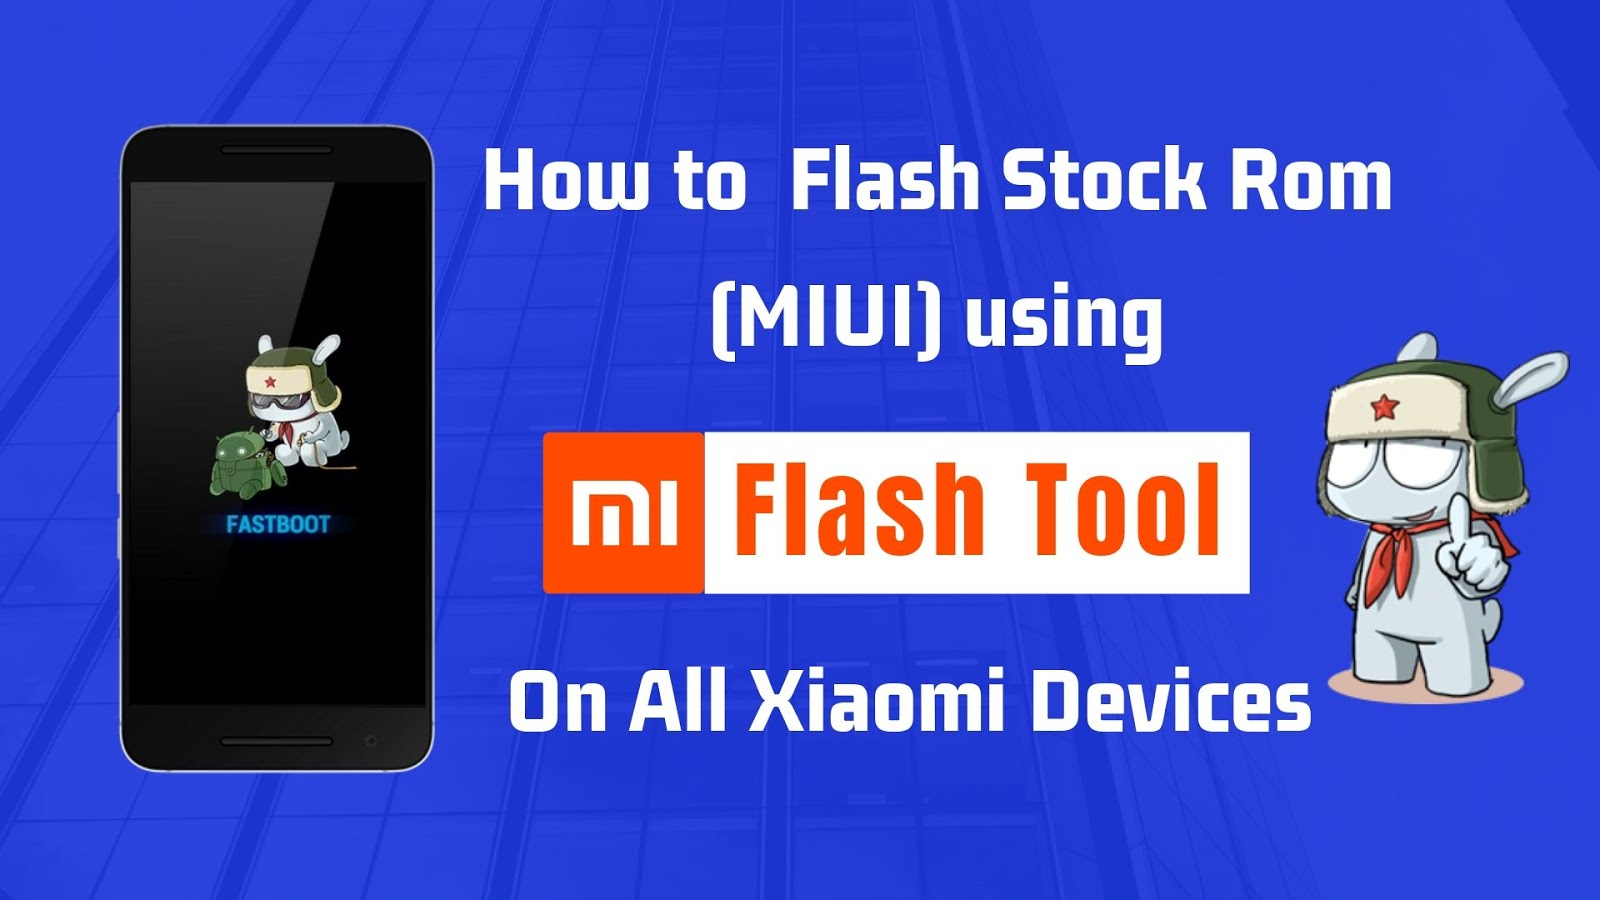 Flash Stock Rom on Redmi Note 4 using Mi Flash Tool